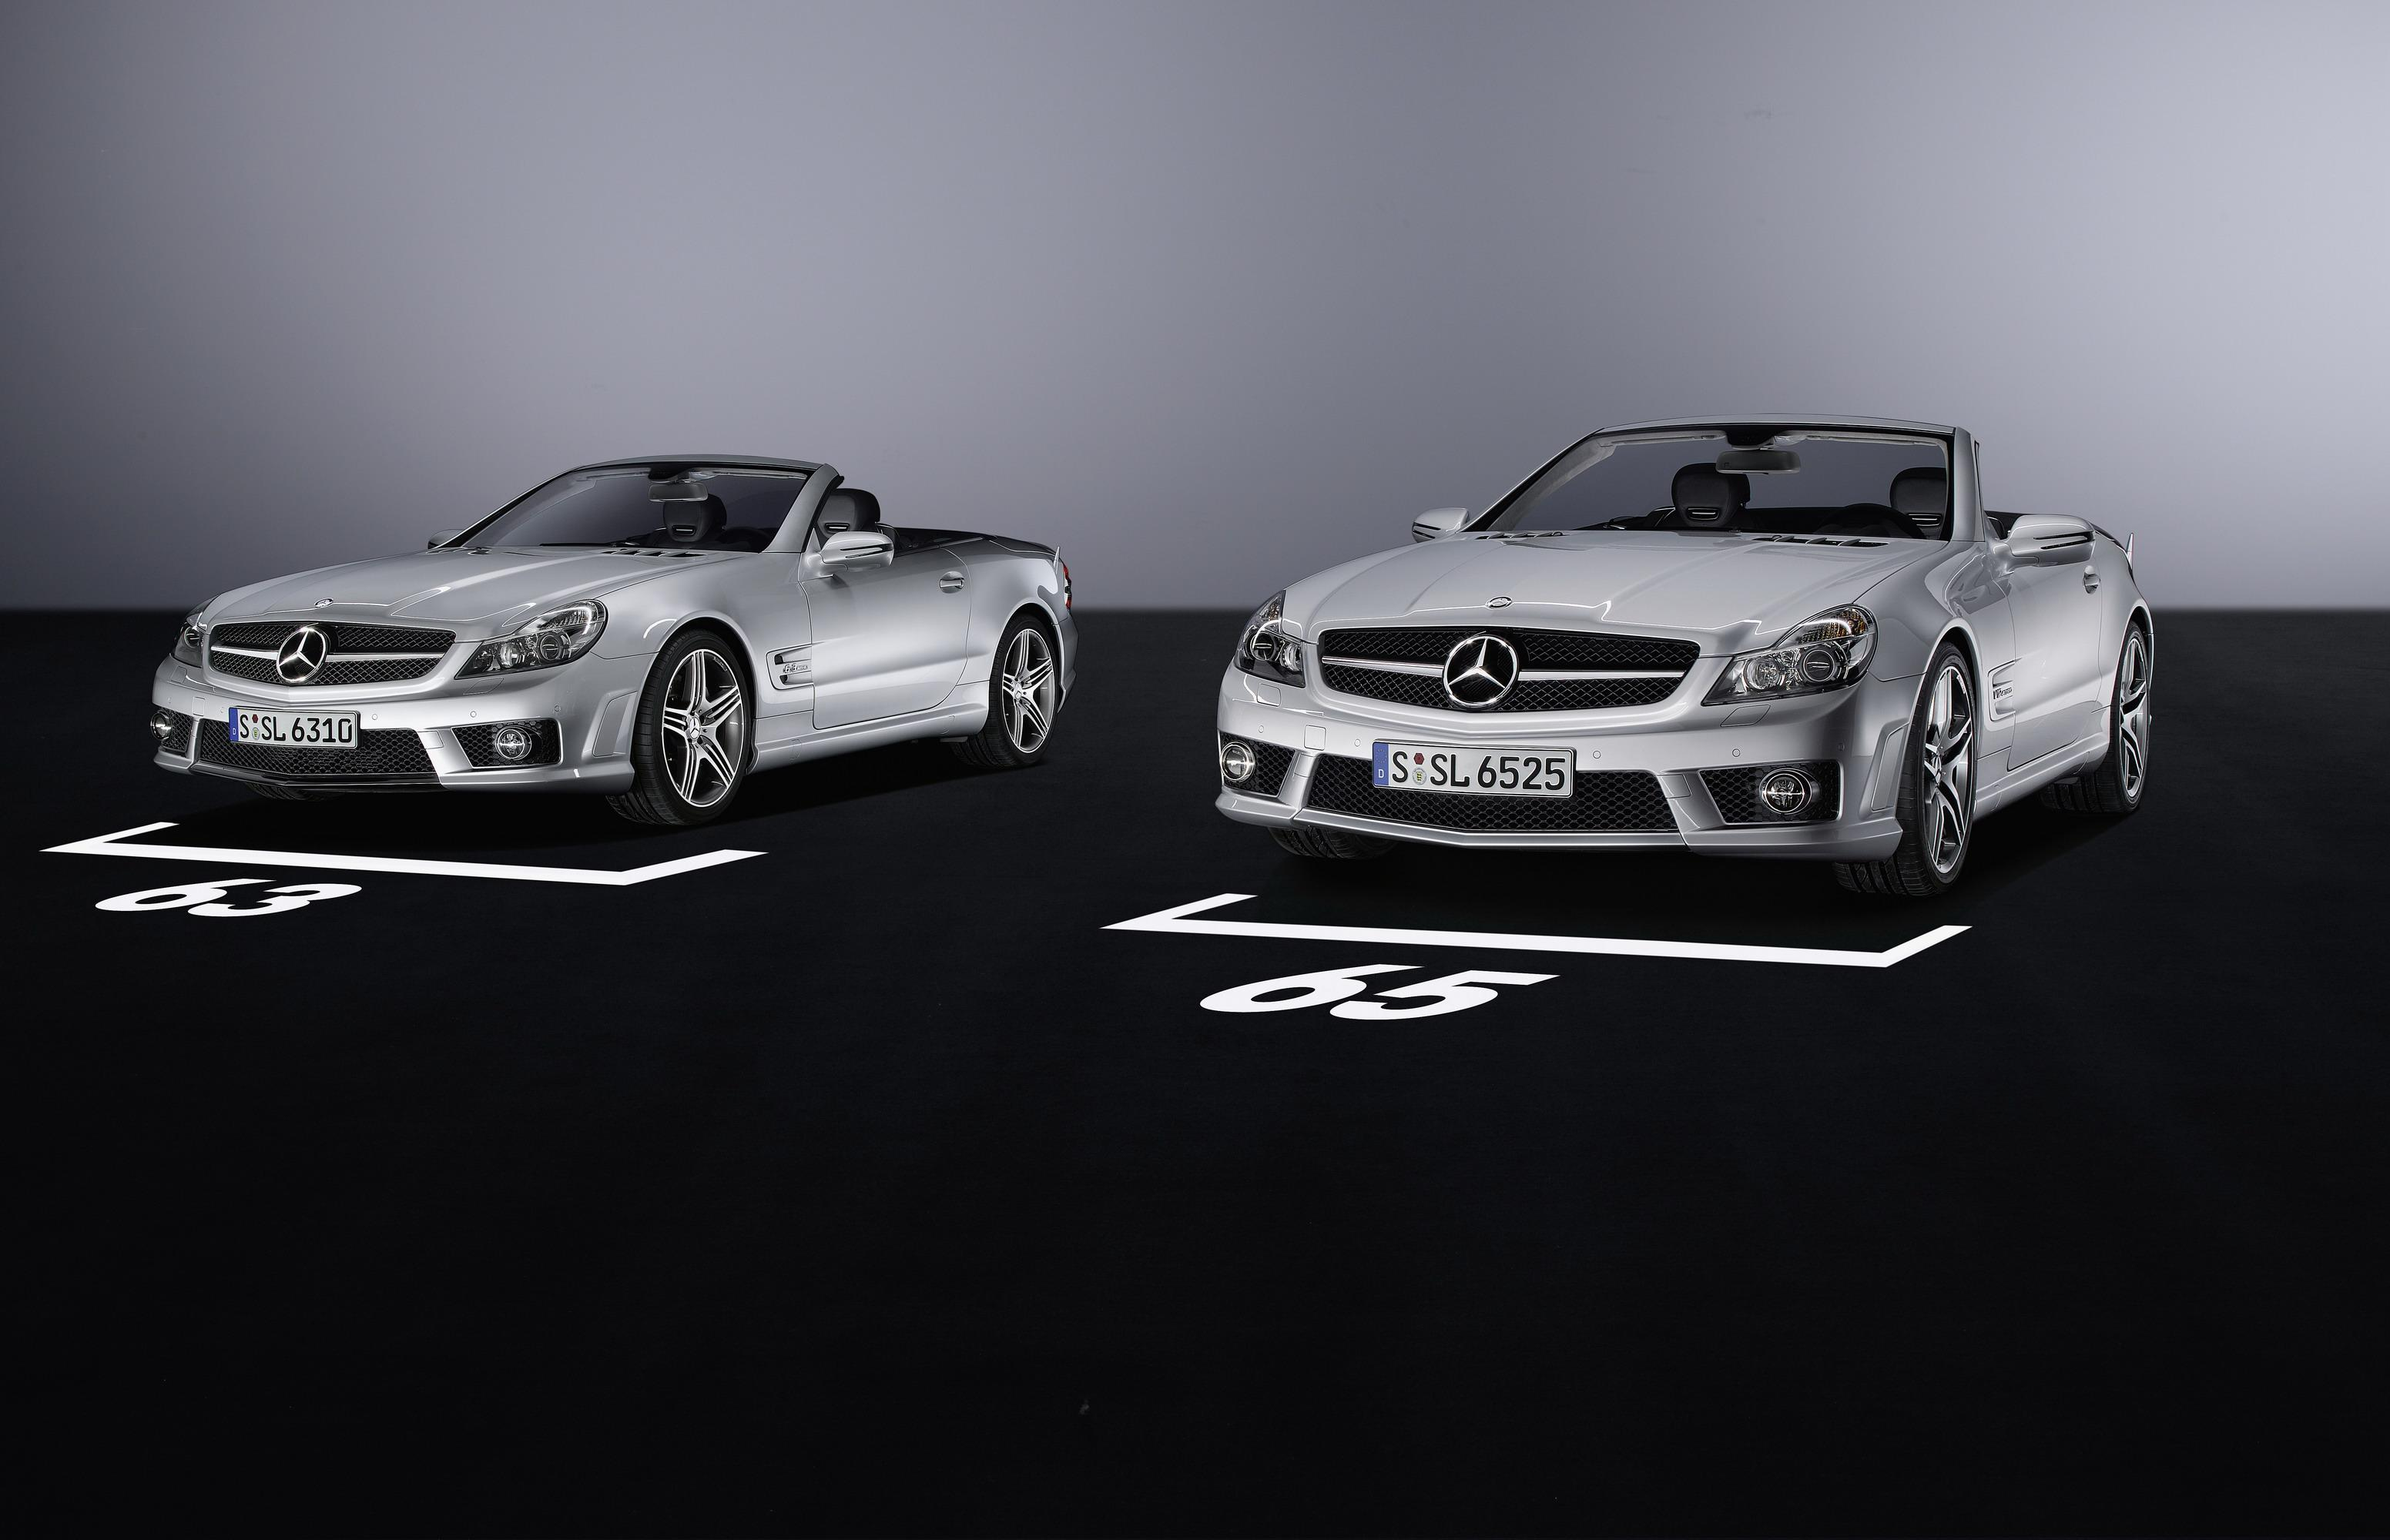 2009 Mercedes SL63 And SL65 AMG Review - Top Speed. »